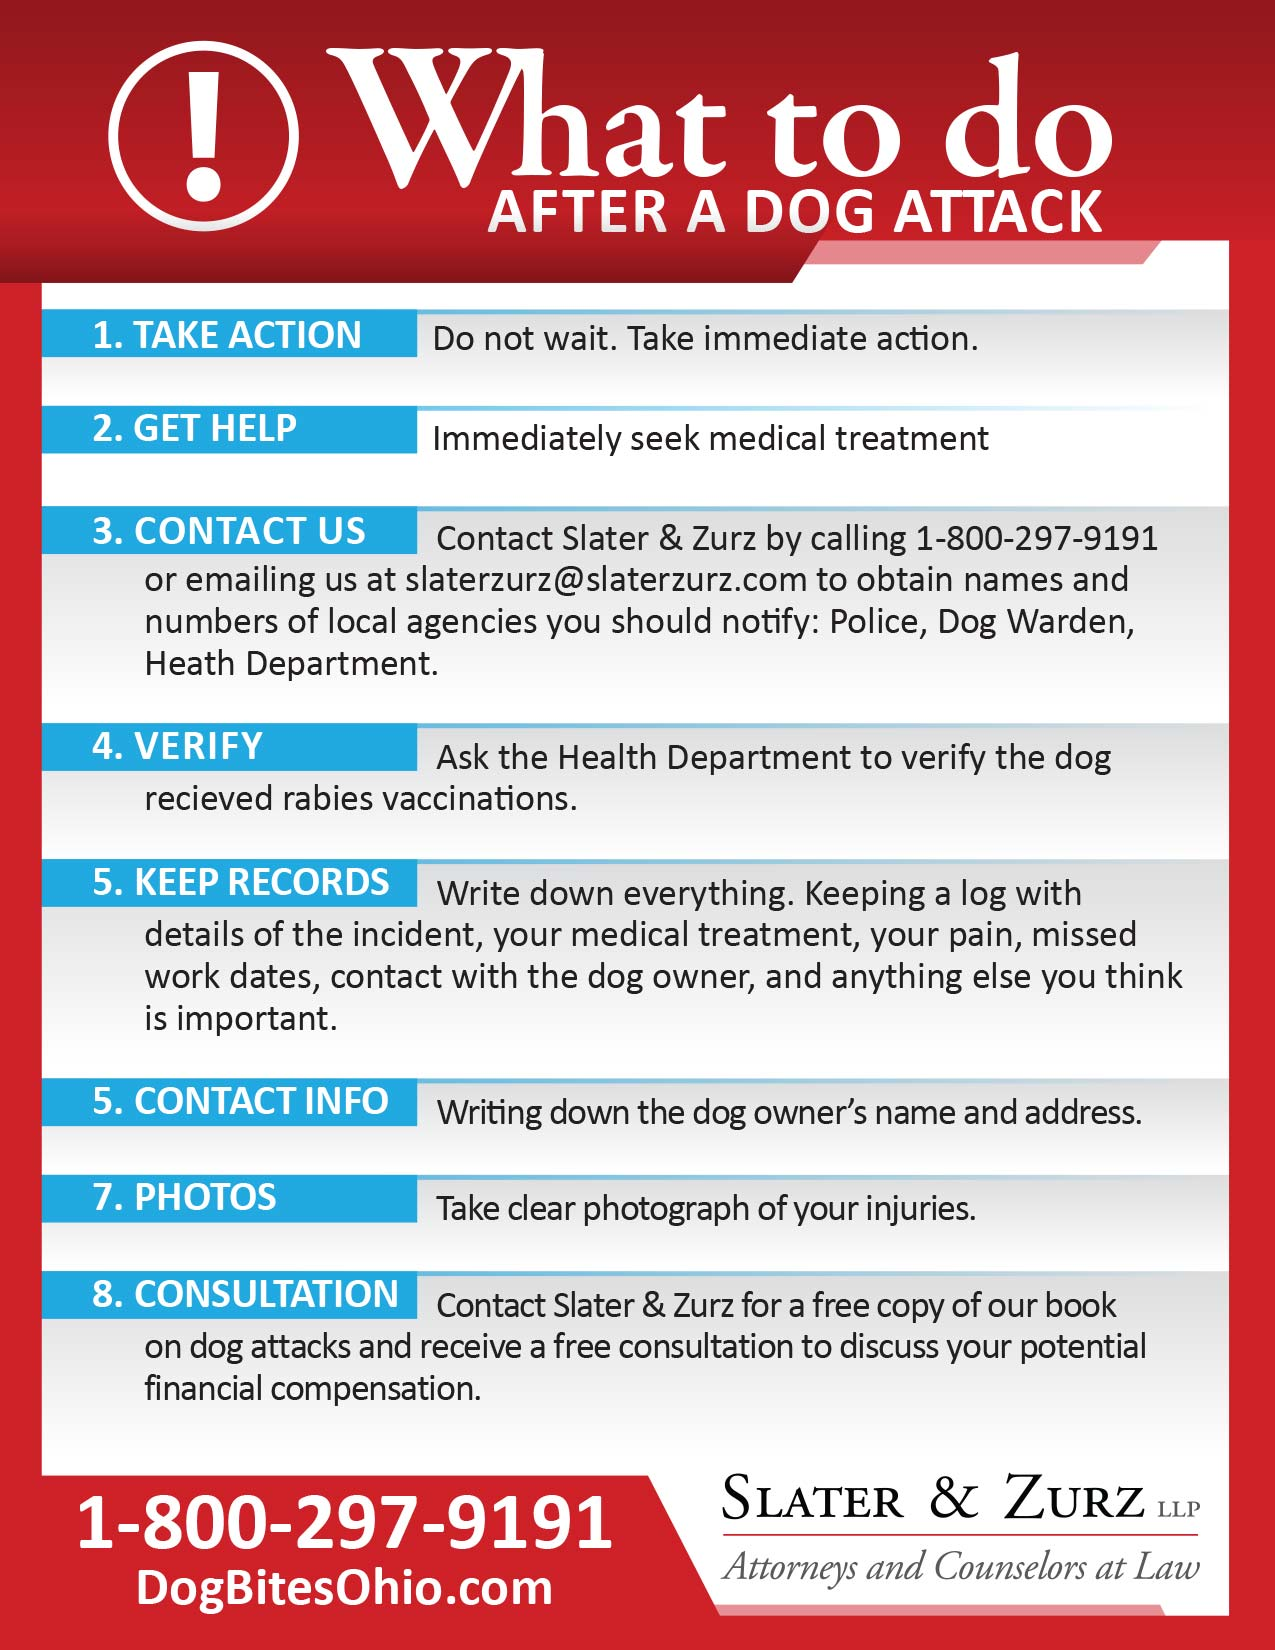 What to Do After a Dog Bite - 8 Steps to Follow When Bitten